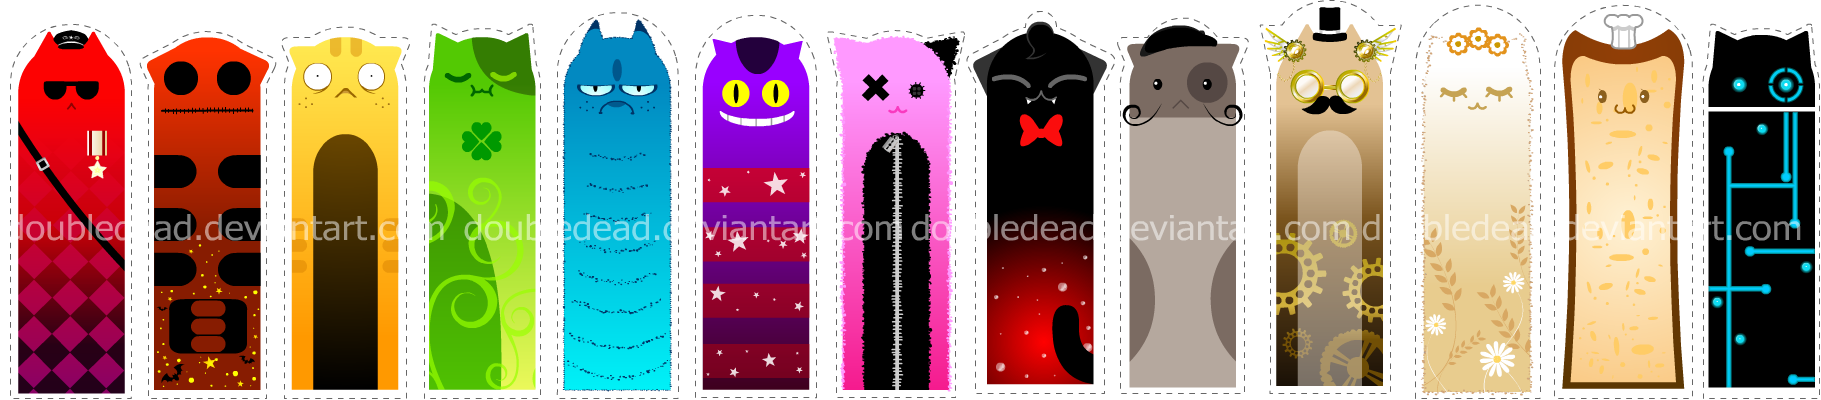 Cool Bookmarks Part - 34: Closer2thelung 160 24 Cat Bookmarks By DoubleDead